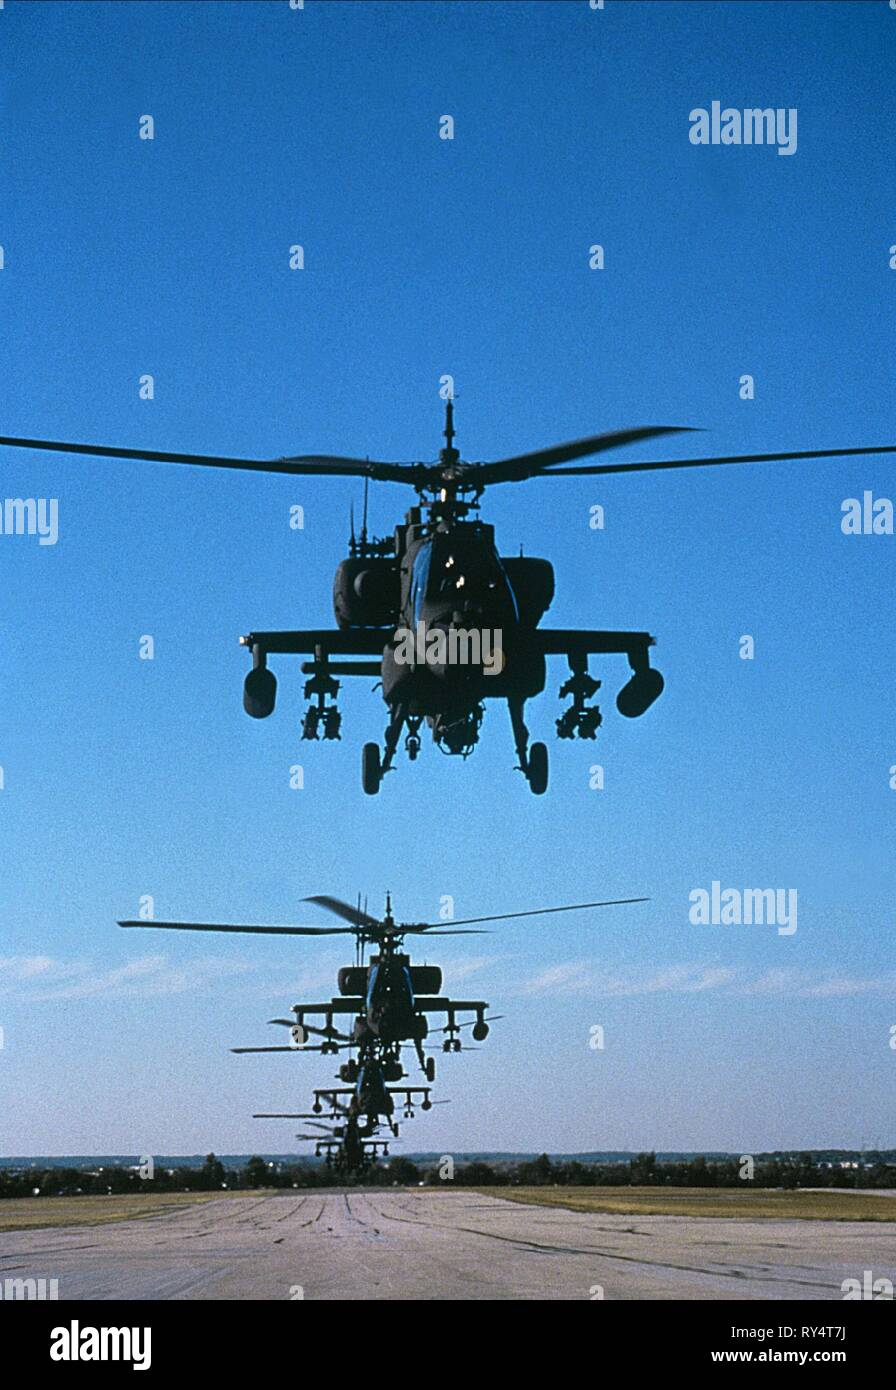 APACHE HELICOPTERS, FIRE BIRDS, 1990 - Stock Image